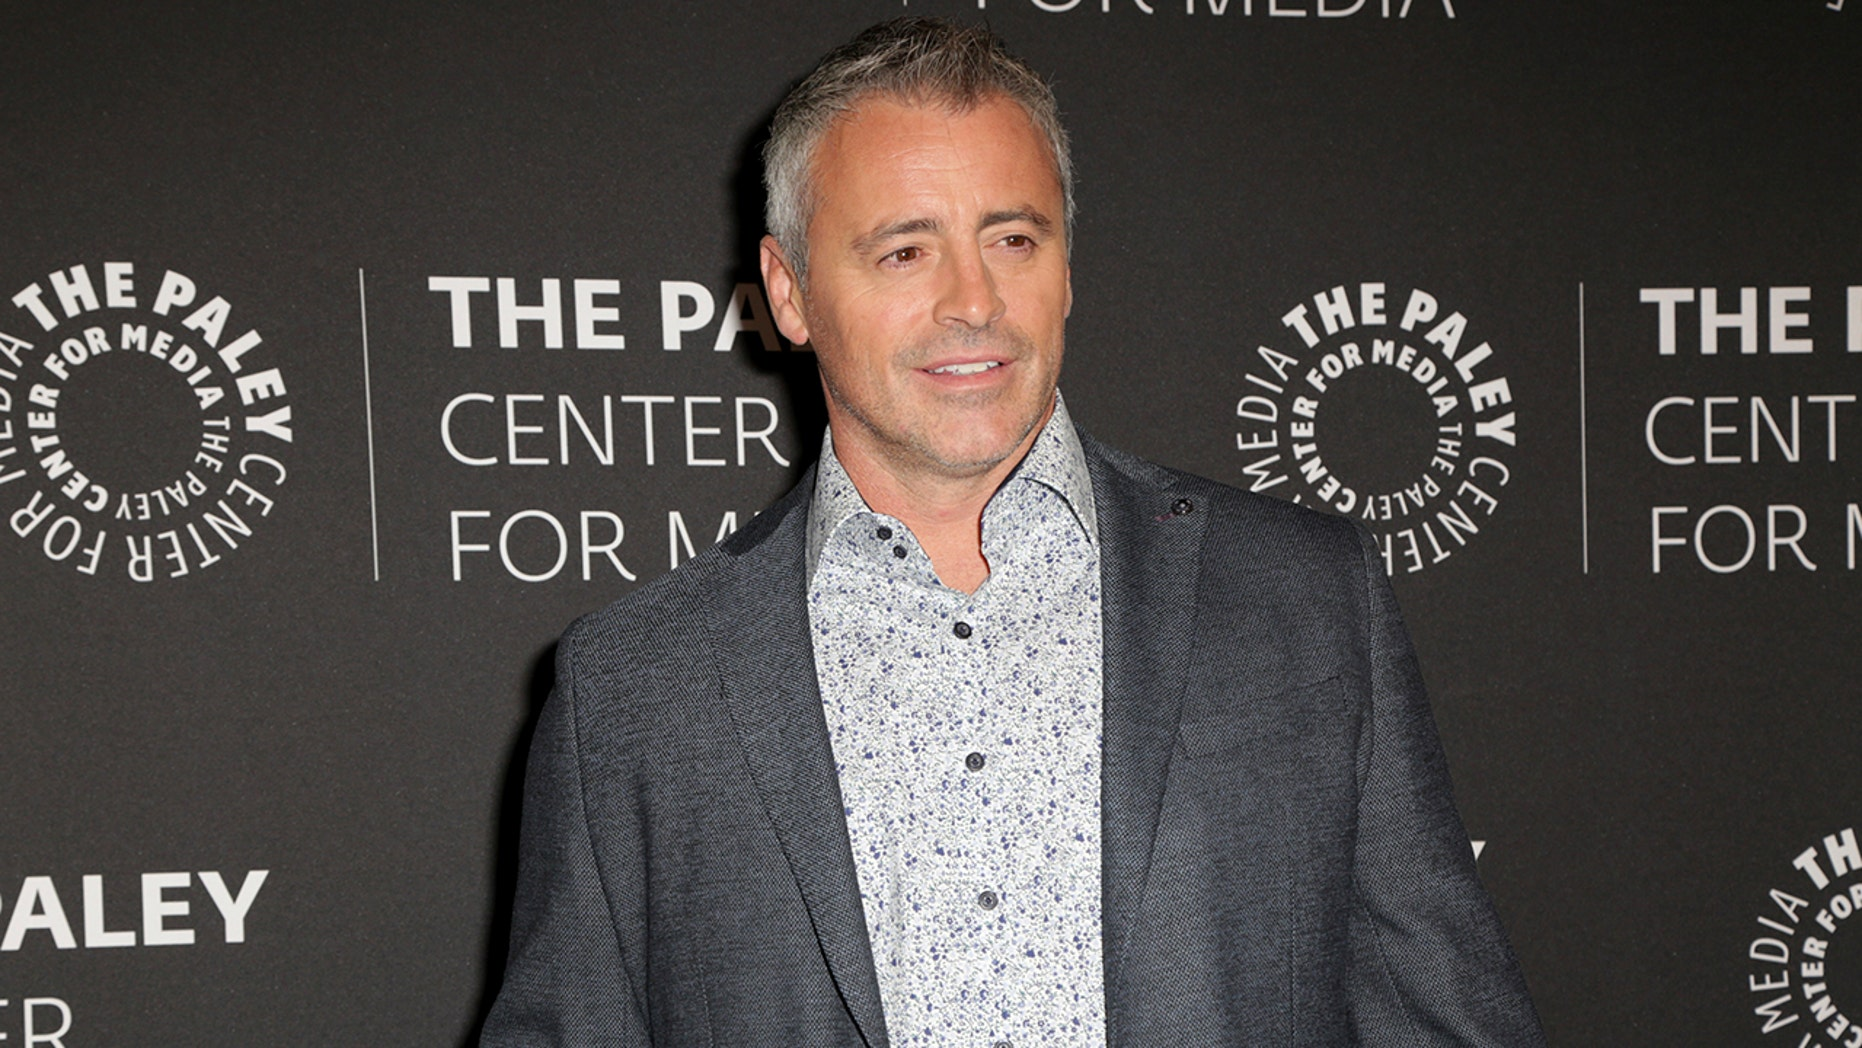 """Matt LeBlanc arrives at a premiere for the final season of """"Episodes"""" at The Paley Center for Media on Wednesday, Aug. 16, 2017, in Beverly Hills, Calif. (Photo by Alexander G. Seyum/Invision/AP)"""